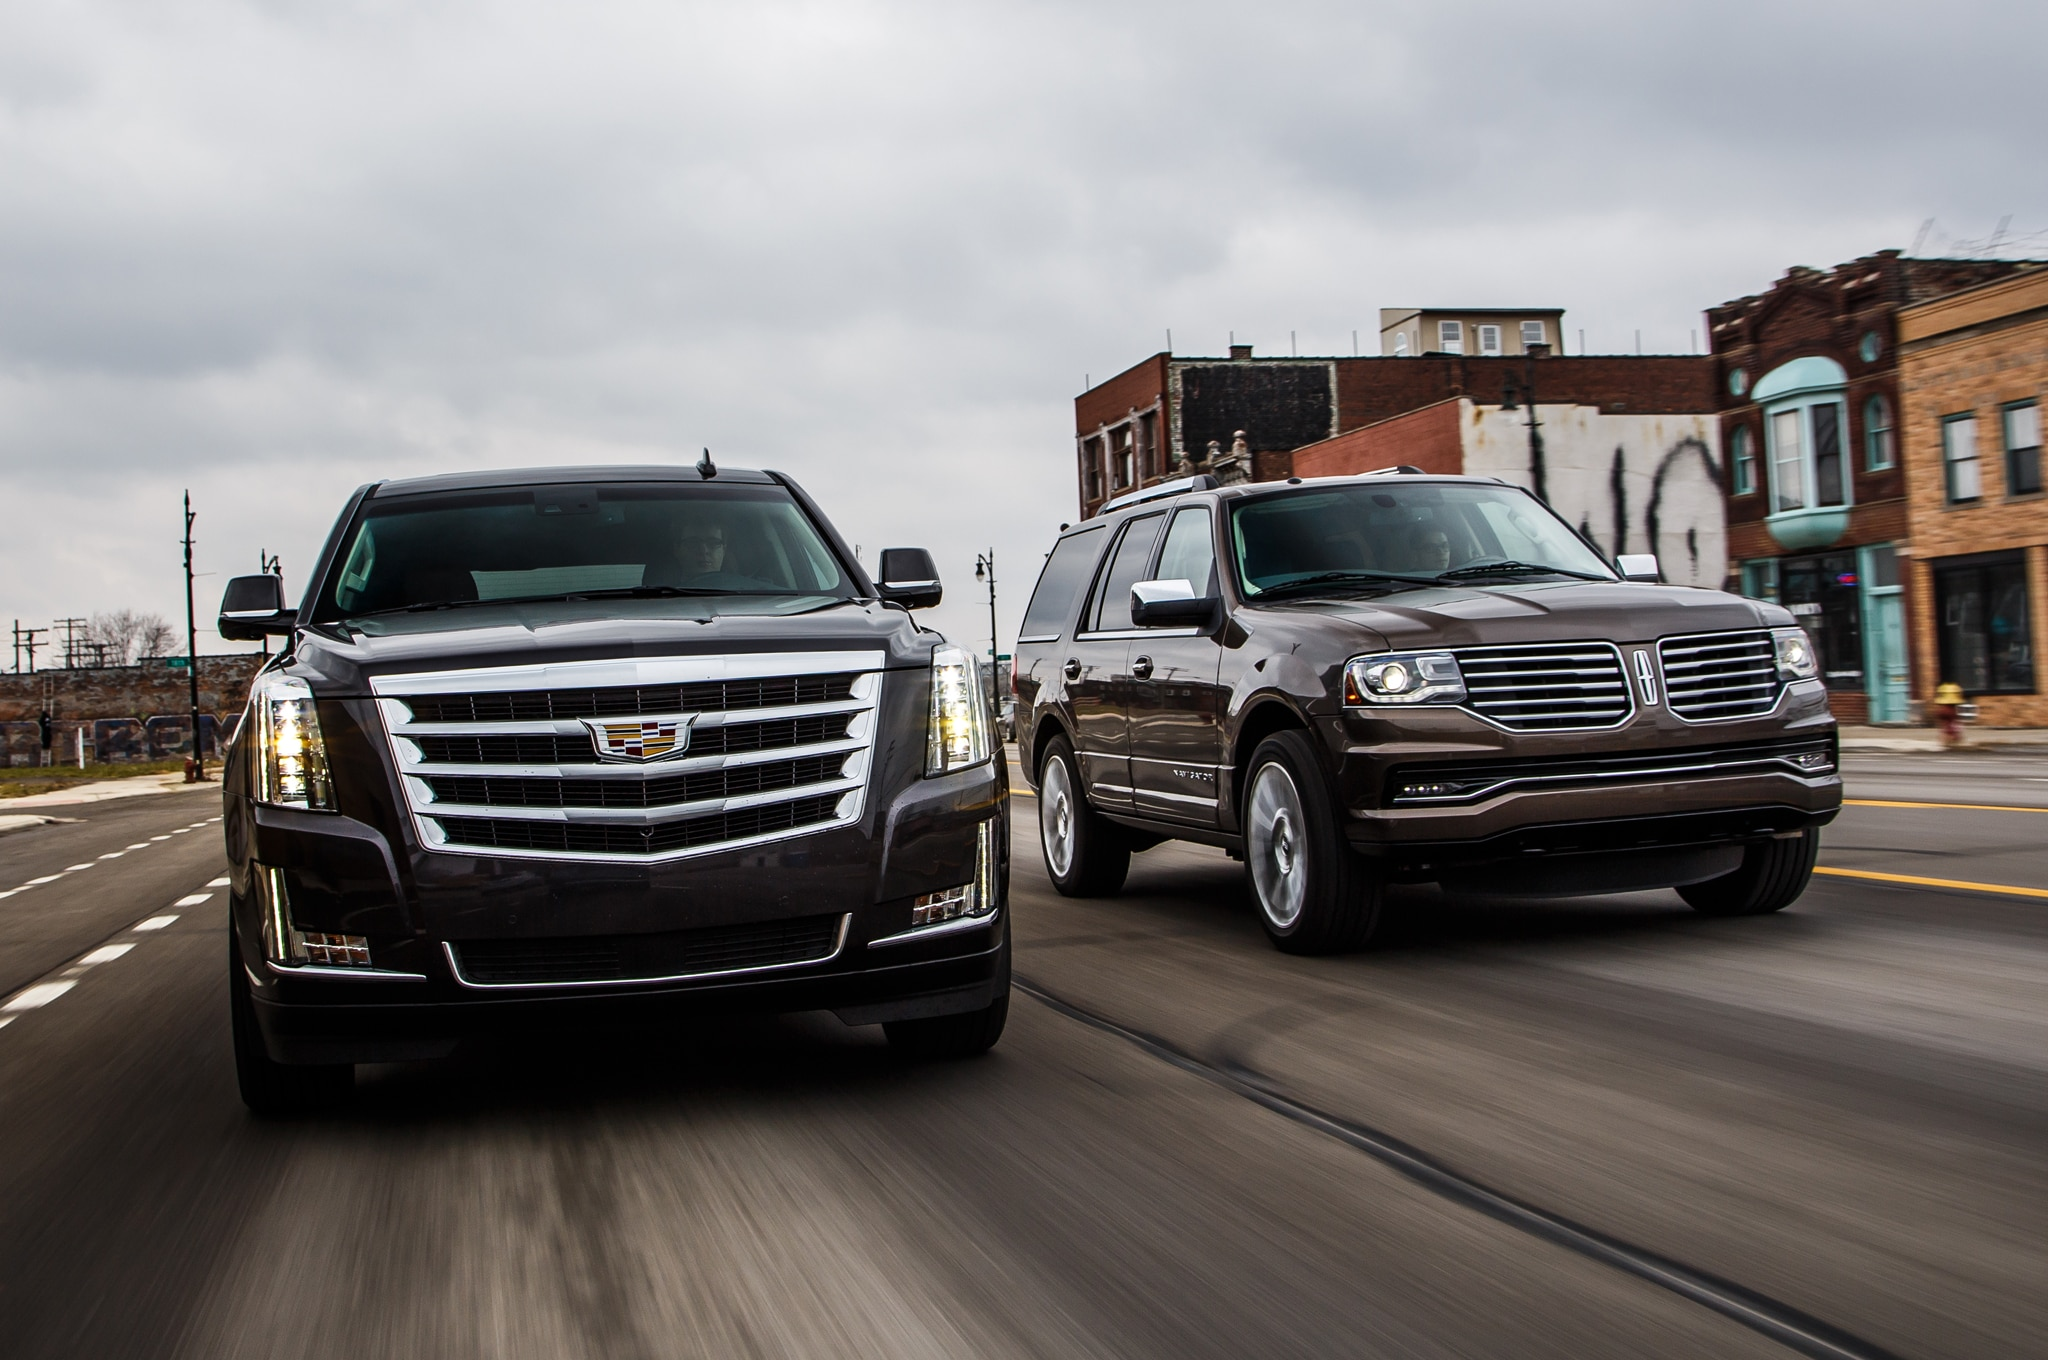 2017 Cadillac Escalade Vs Lincoln Navigator Comparison